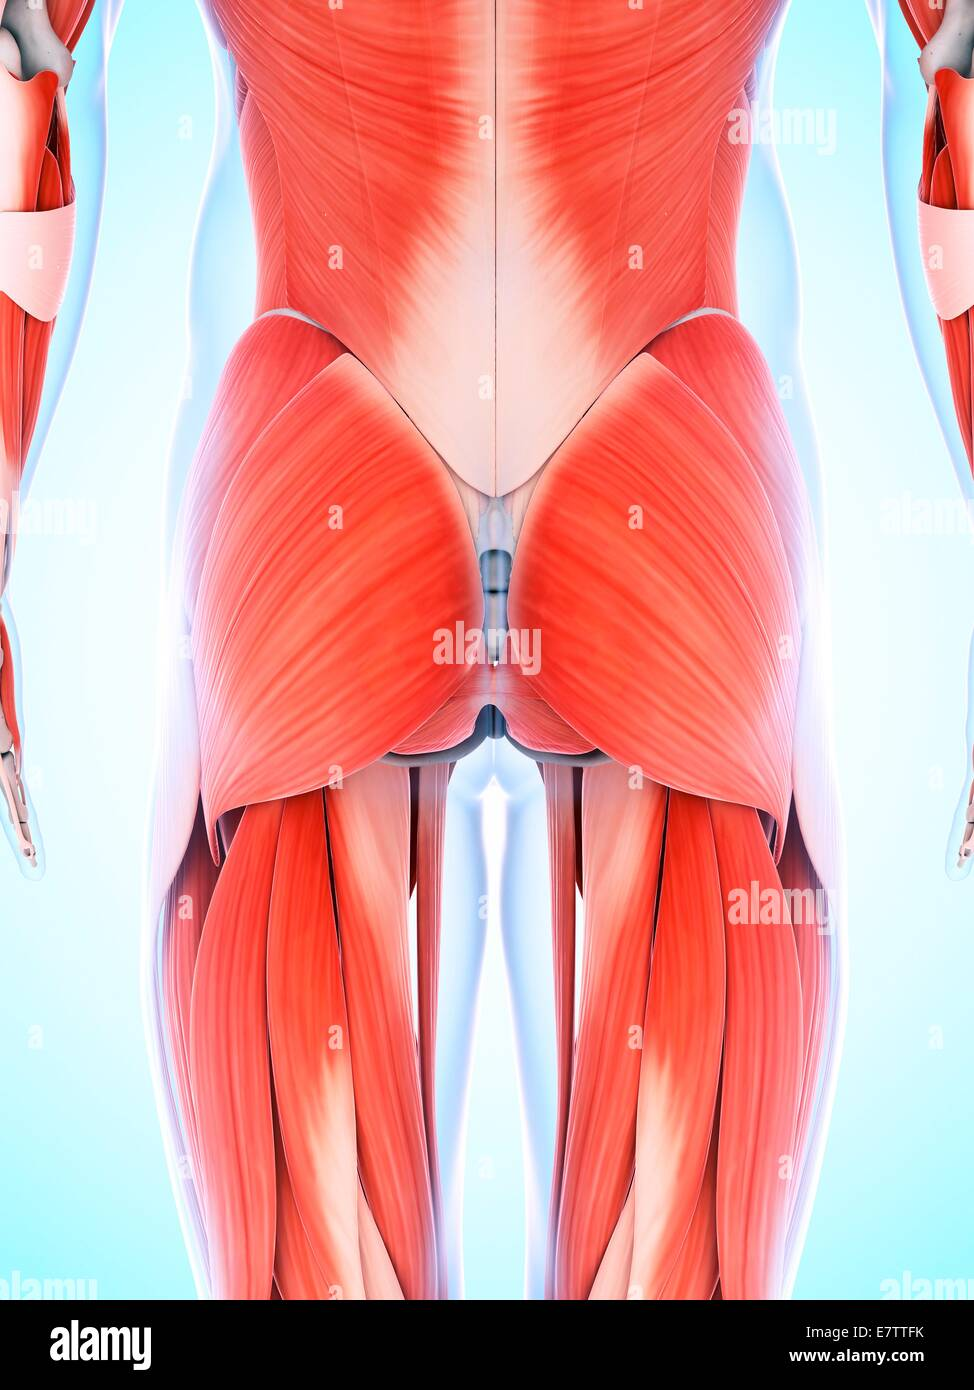 Human muscular system of the buttocks, computer artwork Stock Photo ...